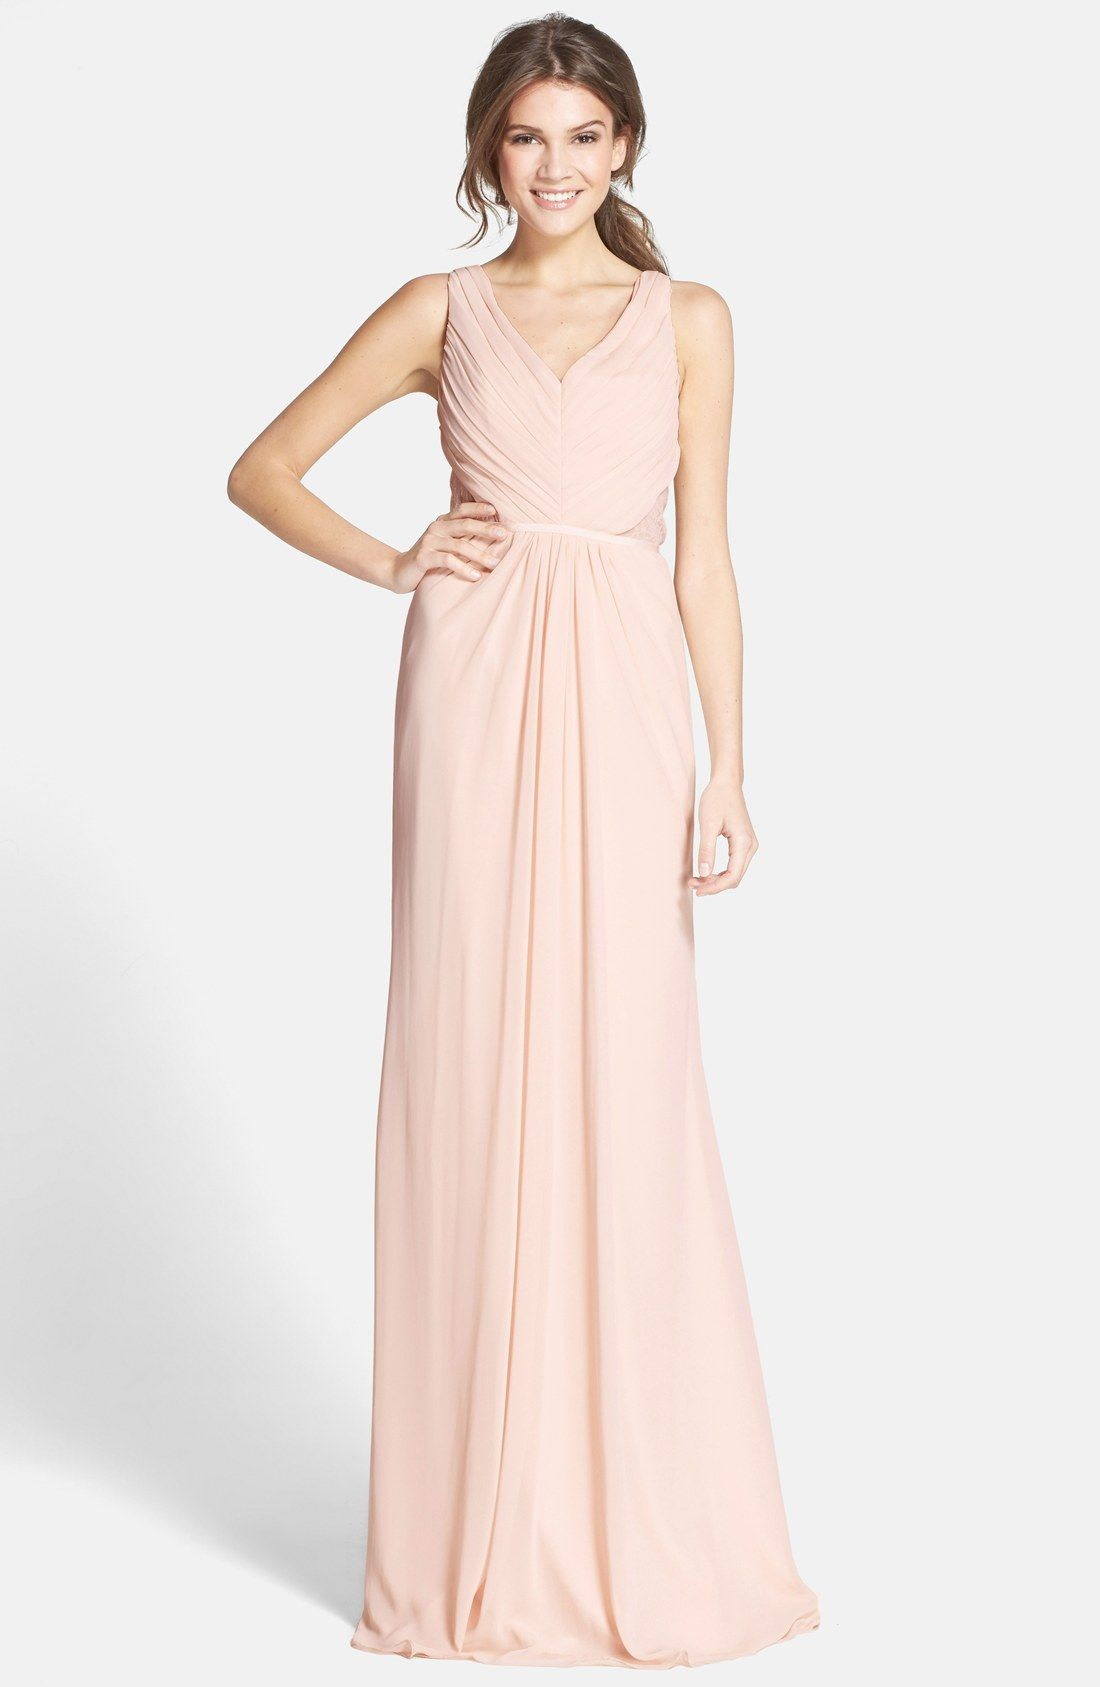 Monique Lhuillier Bridesmaids Lace Back Chiffon Gown | anne + ...